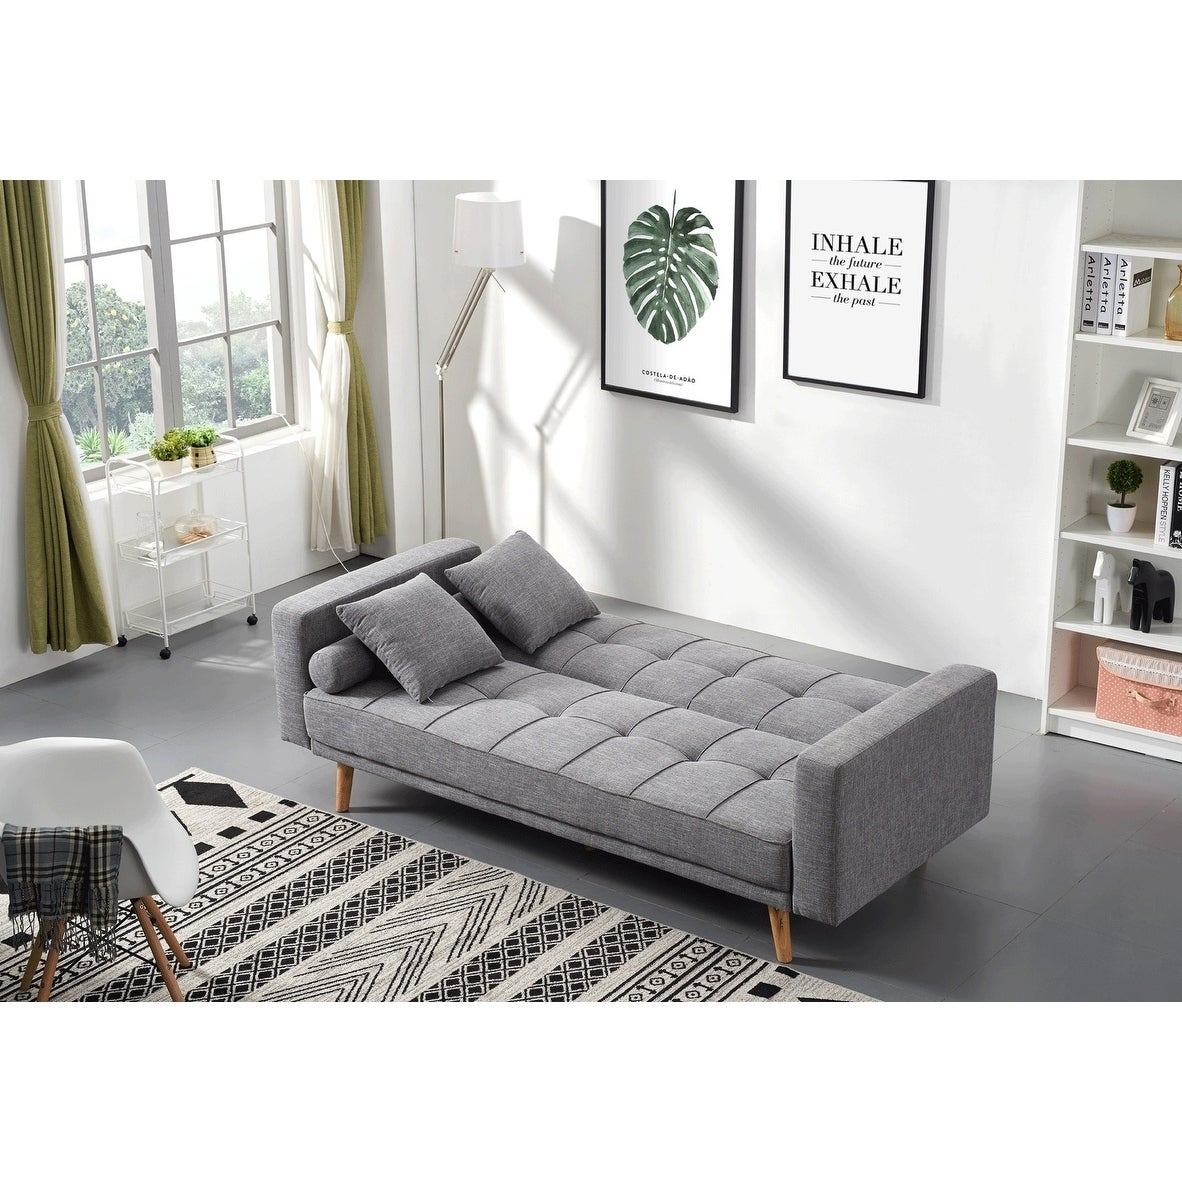 Luca Home Alex Scandinavian Style Sofa Bed Free Shipping Today 20585189